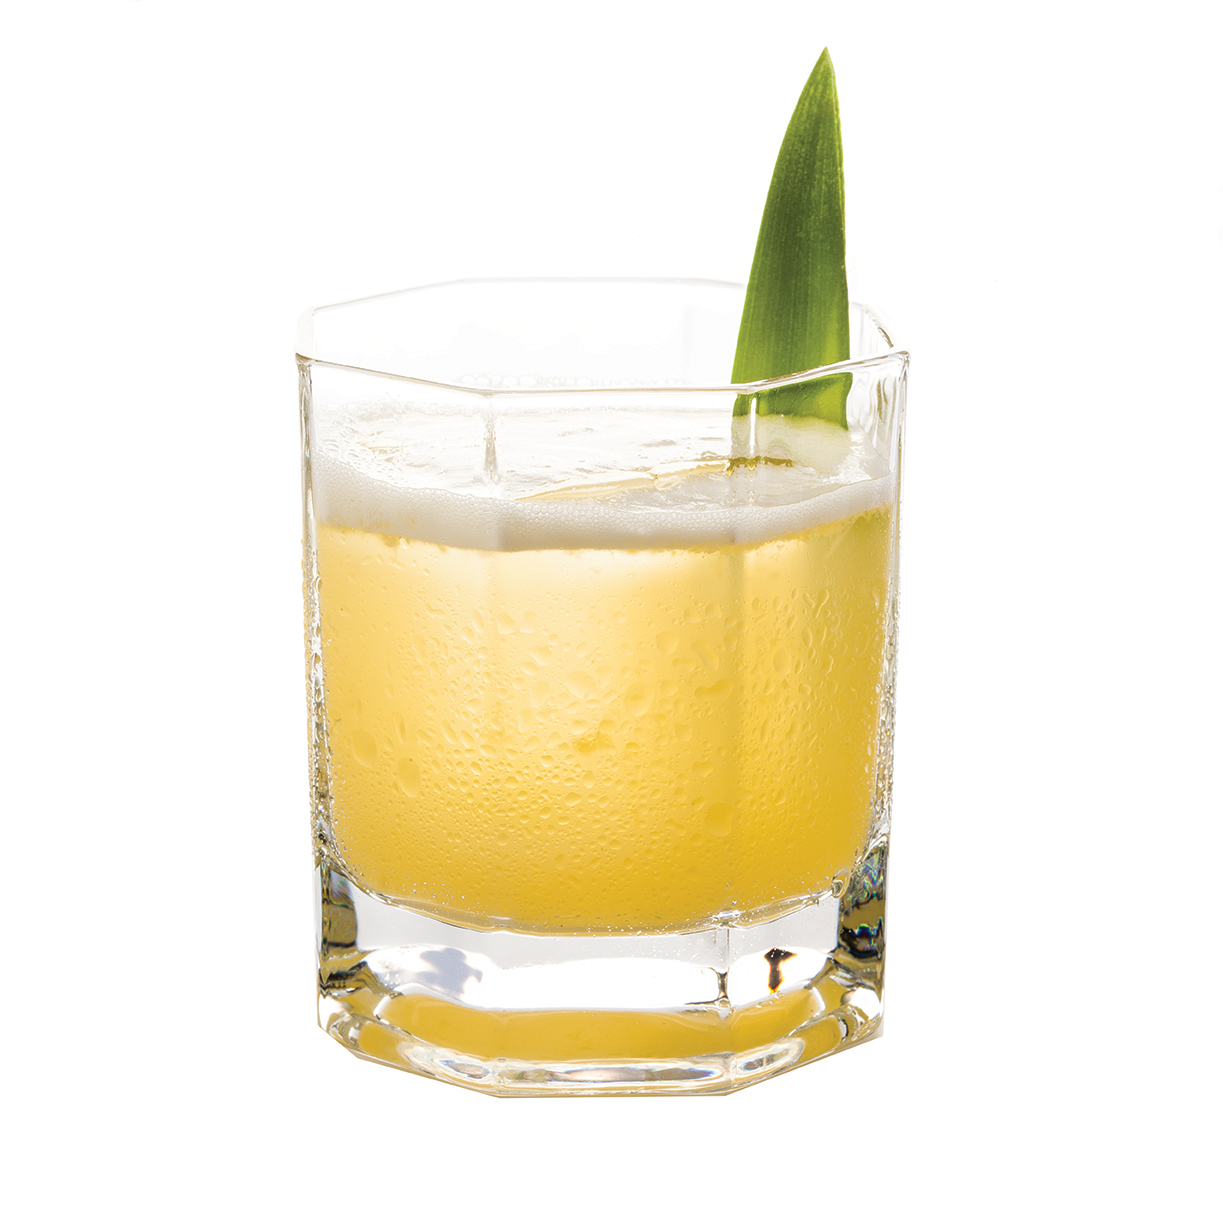 PINEAPPLE ONASSIS - 1 part KLEOS Mastiha Spirit1 part Glenlivet Founders Reserve1⁄2 part fresh lime juice1⁄4 part simple syrup4 1-inch pineapple squares1 rosemary sprigMuddle pineapple and rosemary sprig.Shake all ingredients and strain over ice in a rocks glass.Garnish with a pineapple leaf.                                                       Created by one of Miami's best palettes, Robert Ferrara; well suited for a boss like Aristotle Onassis, peacocking on his private oasis, the yacht Christina.